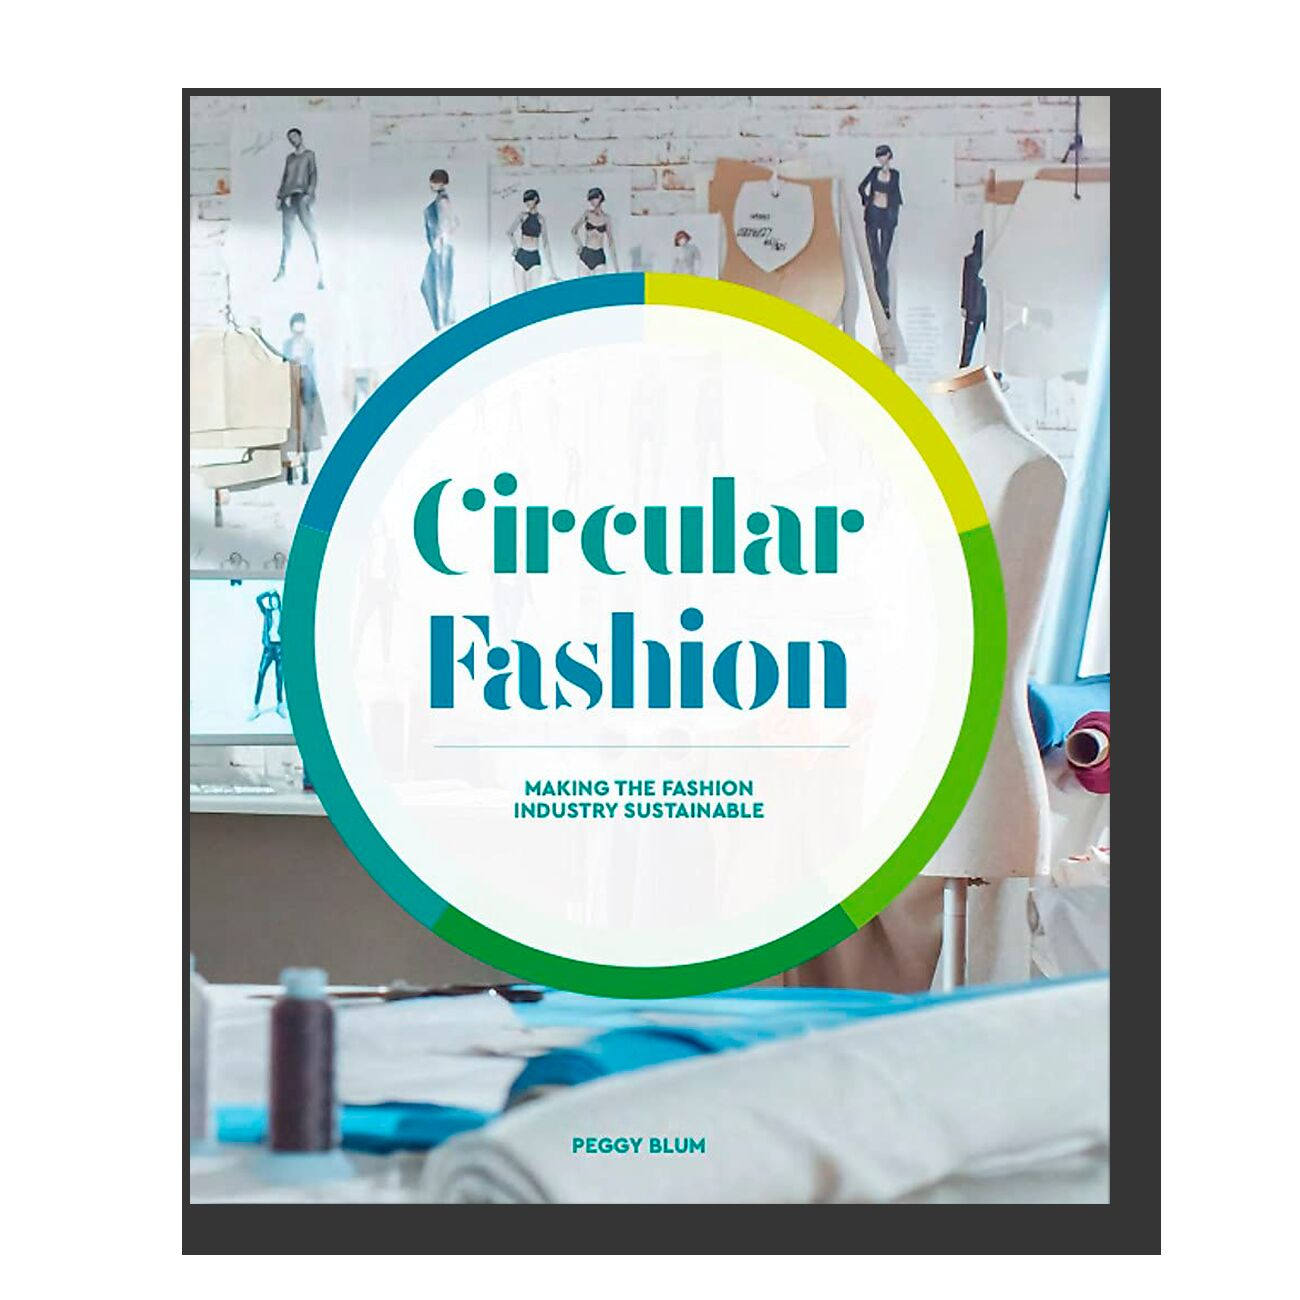 Circular Fashion: Making the Fashion Industry Sustainable